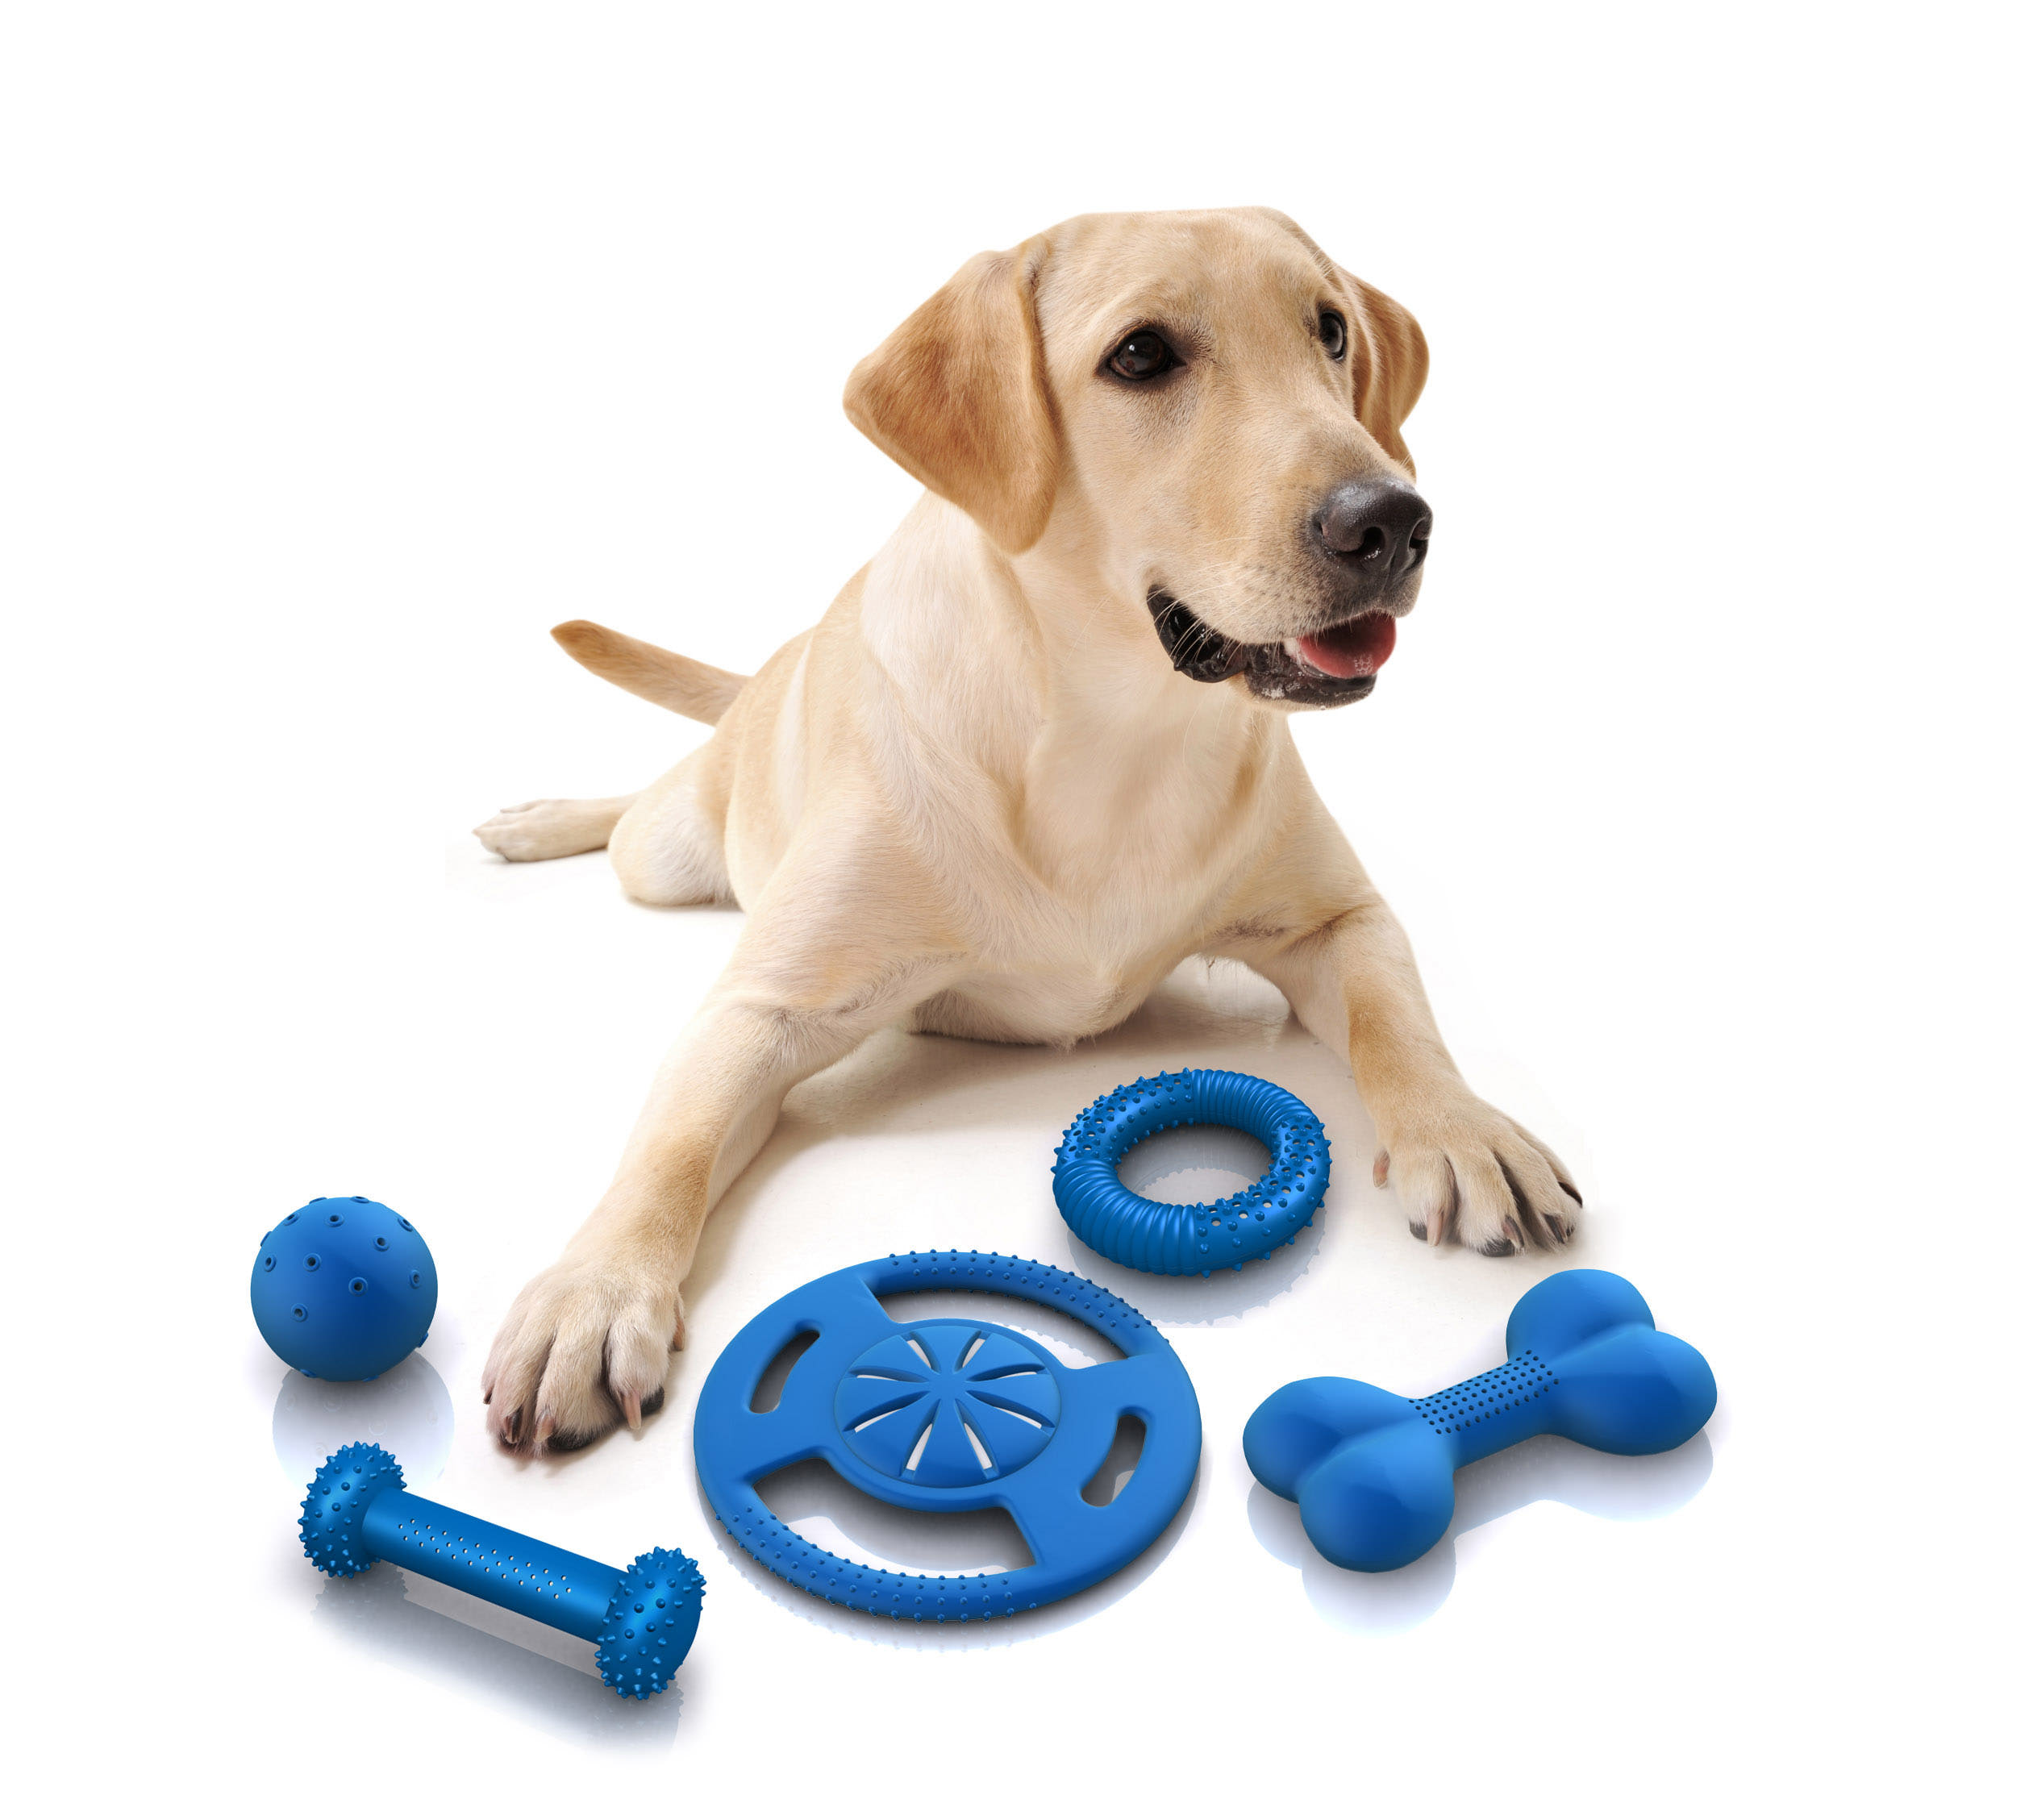 Why Do Some Dogs Not Like Toys